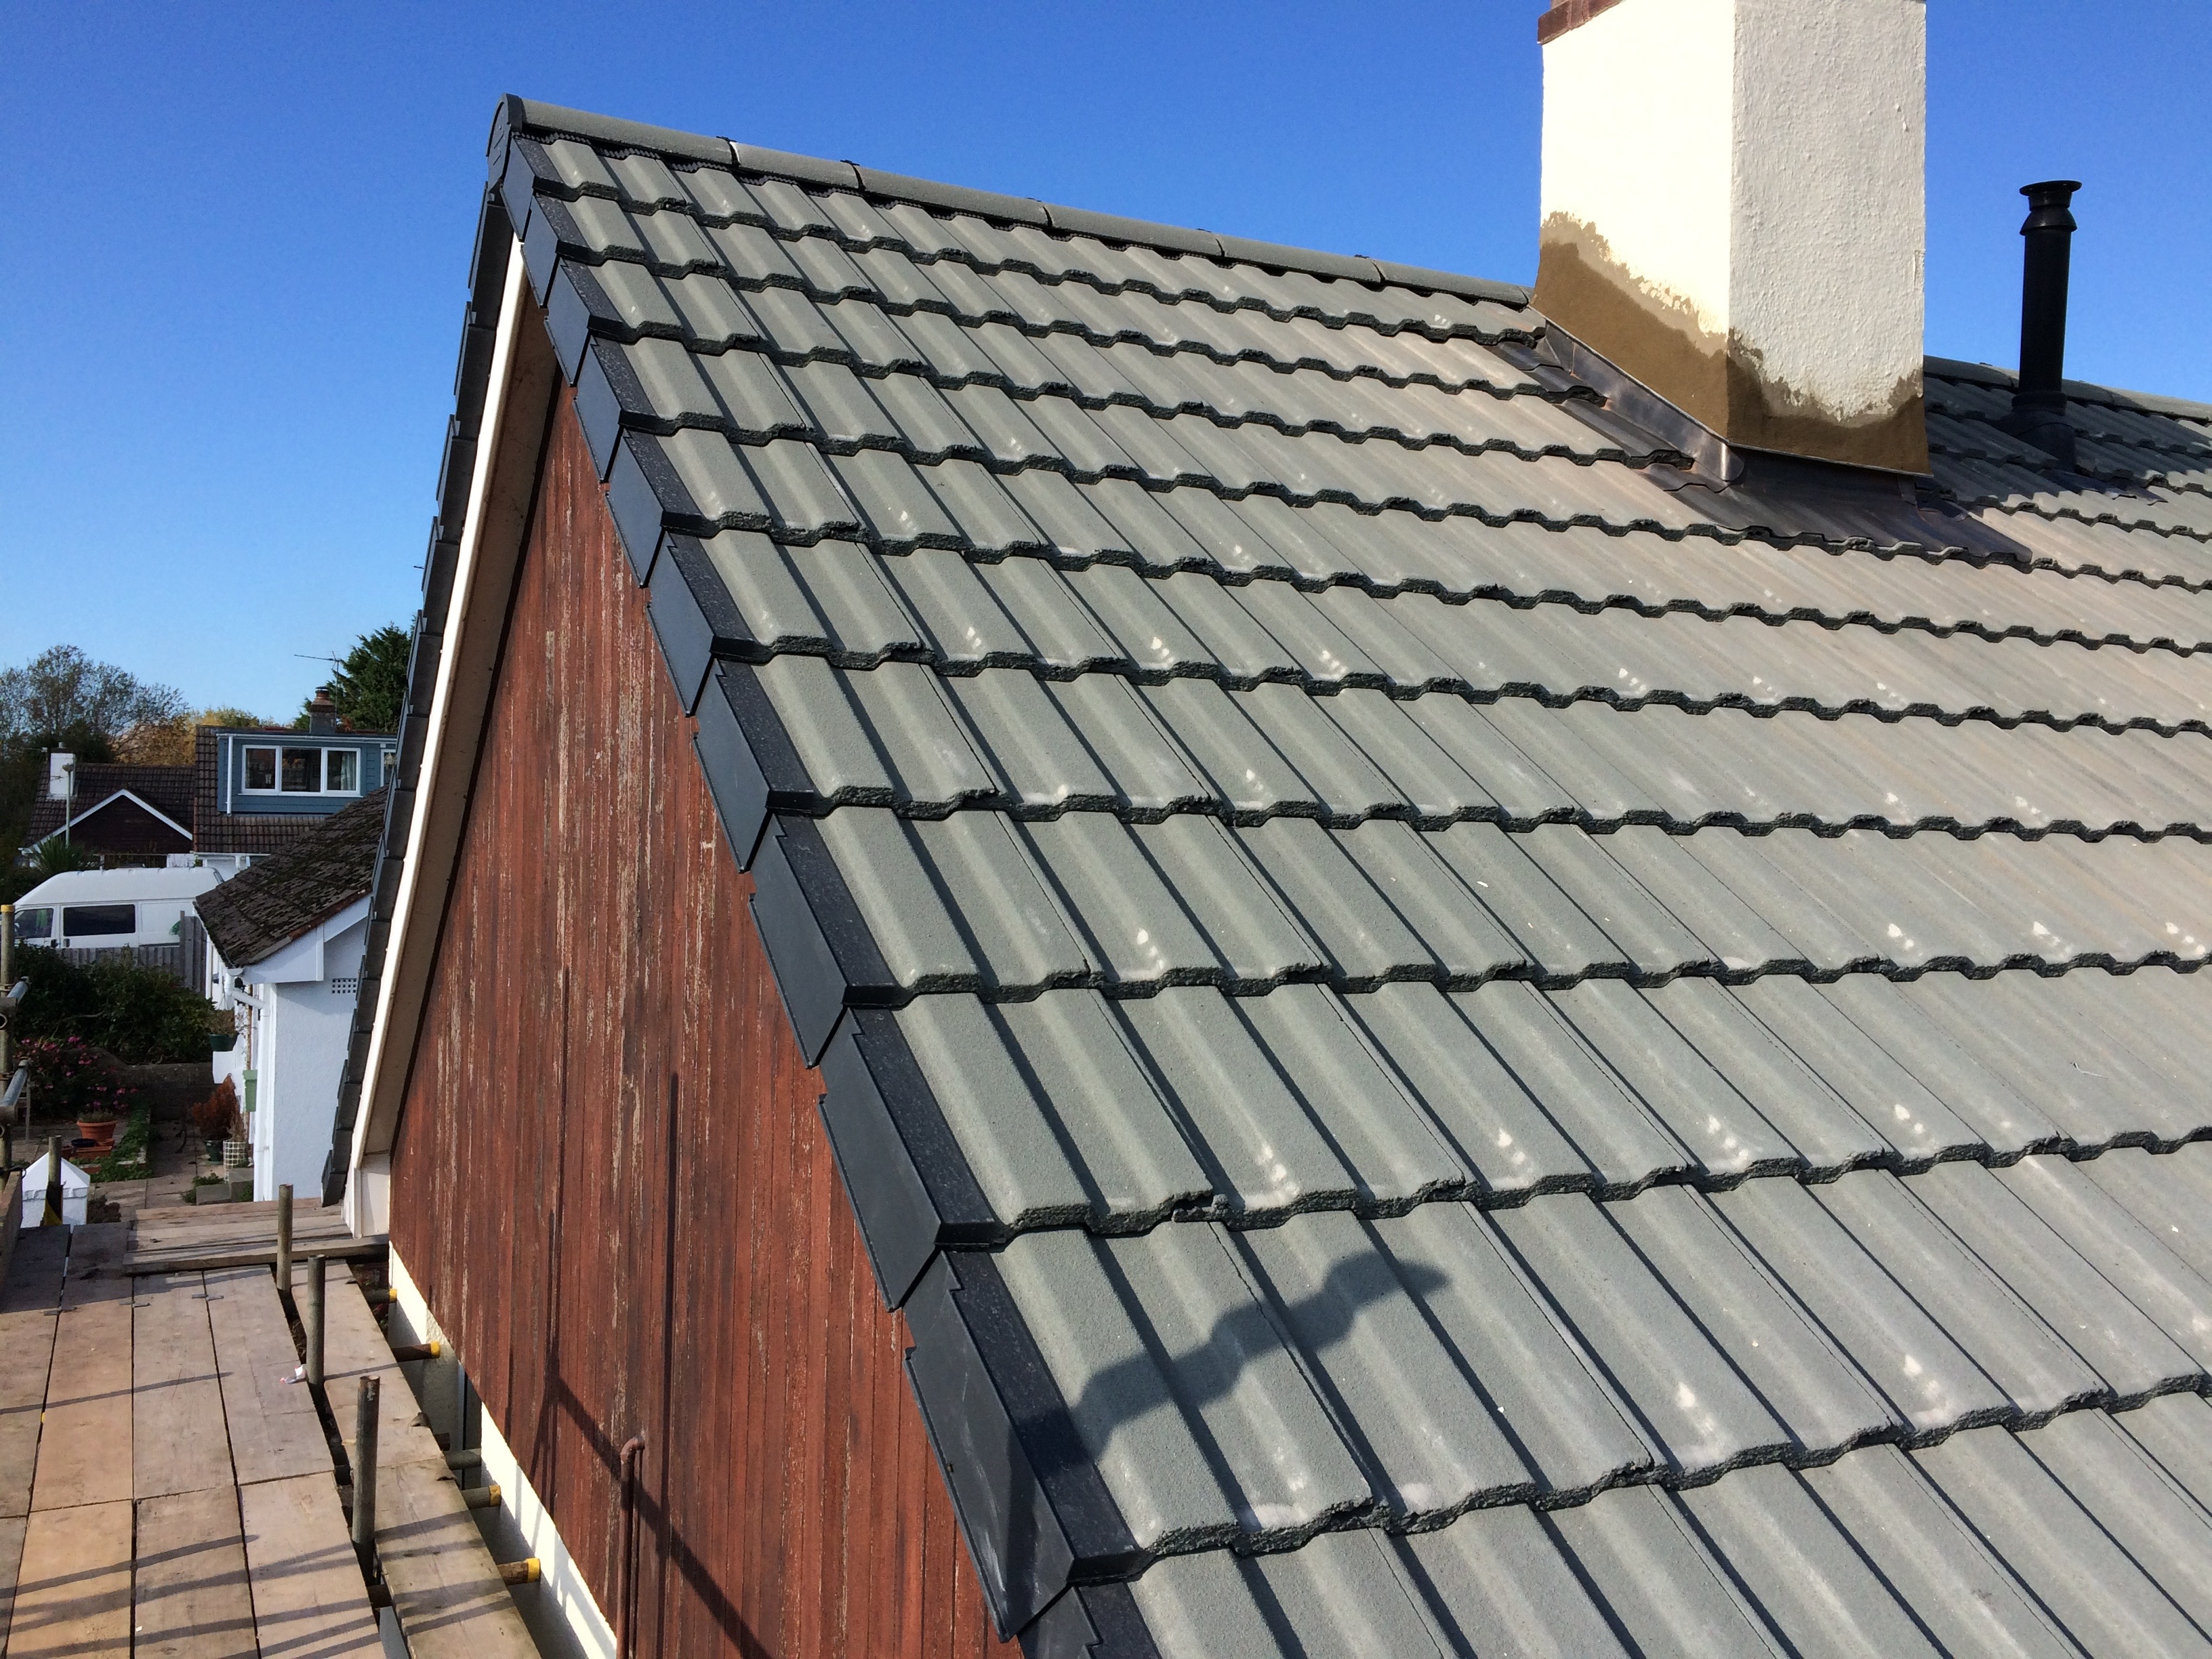 Tile Roofing Amp Leadwork Services In North Devon Jamie